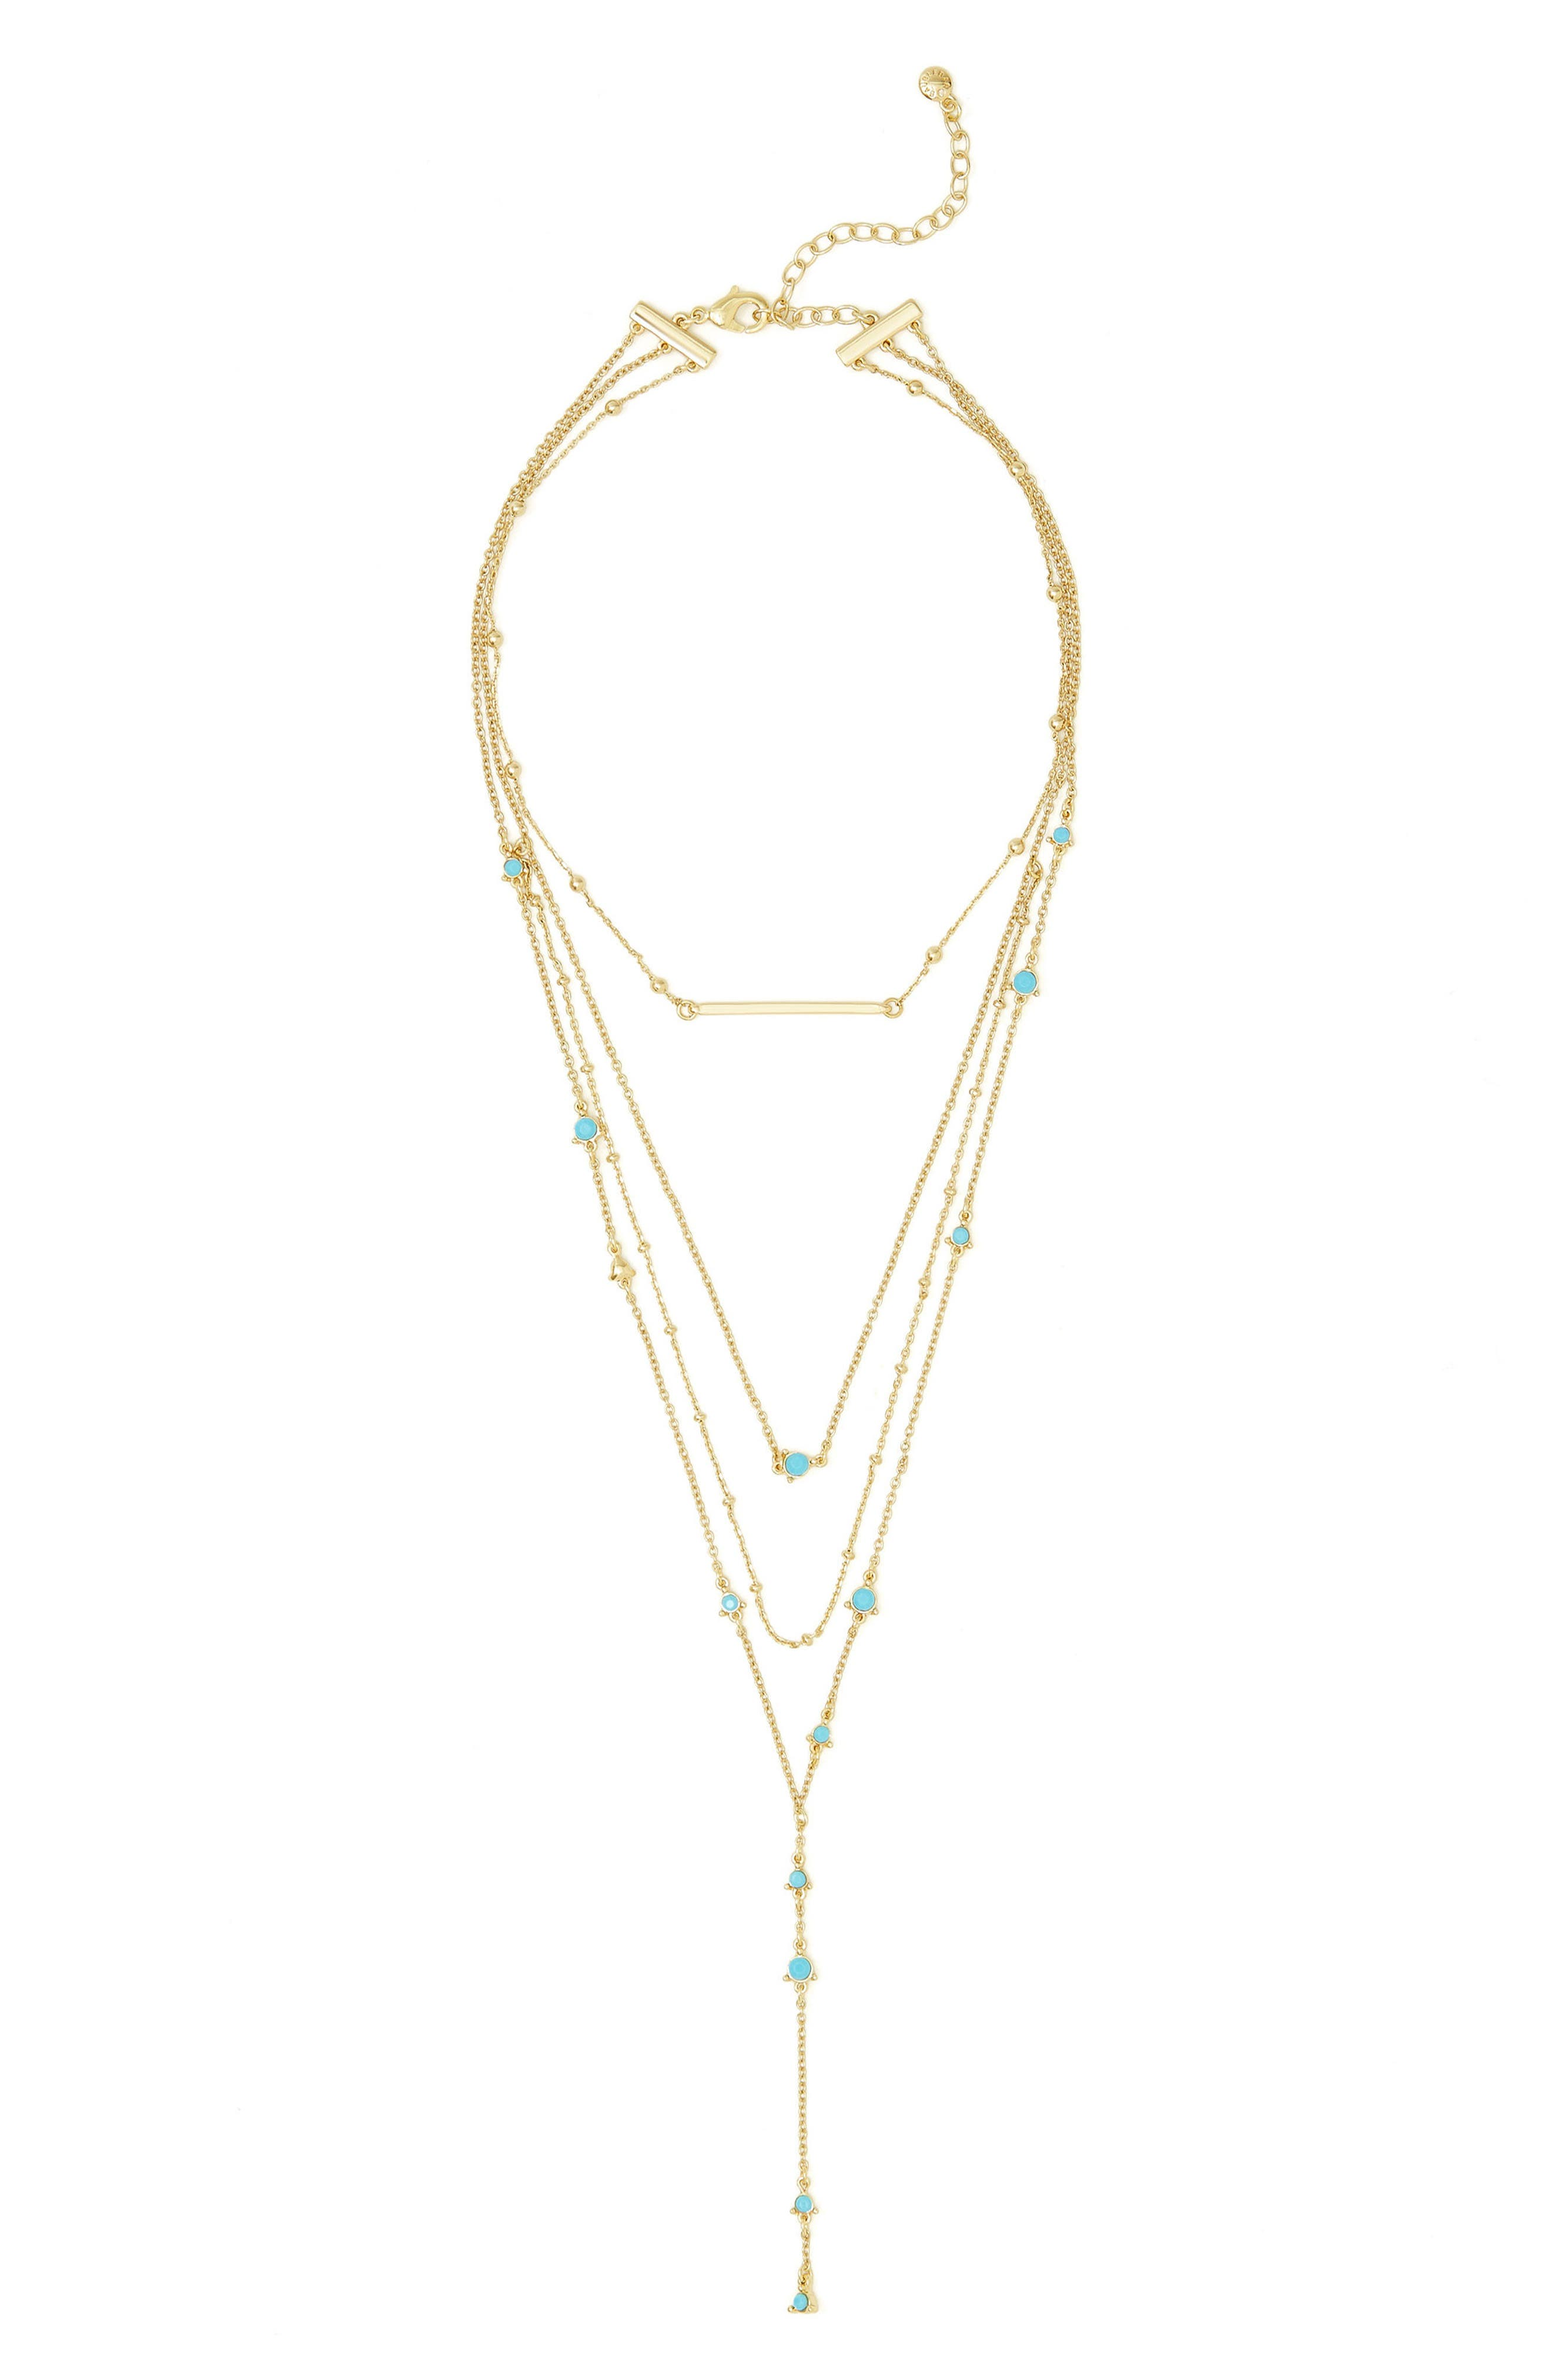 Harlow Layered Lariat Necklace,                             Main thumbnail 1, color,                             Turquoise